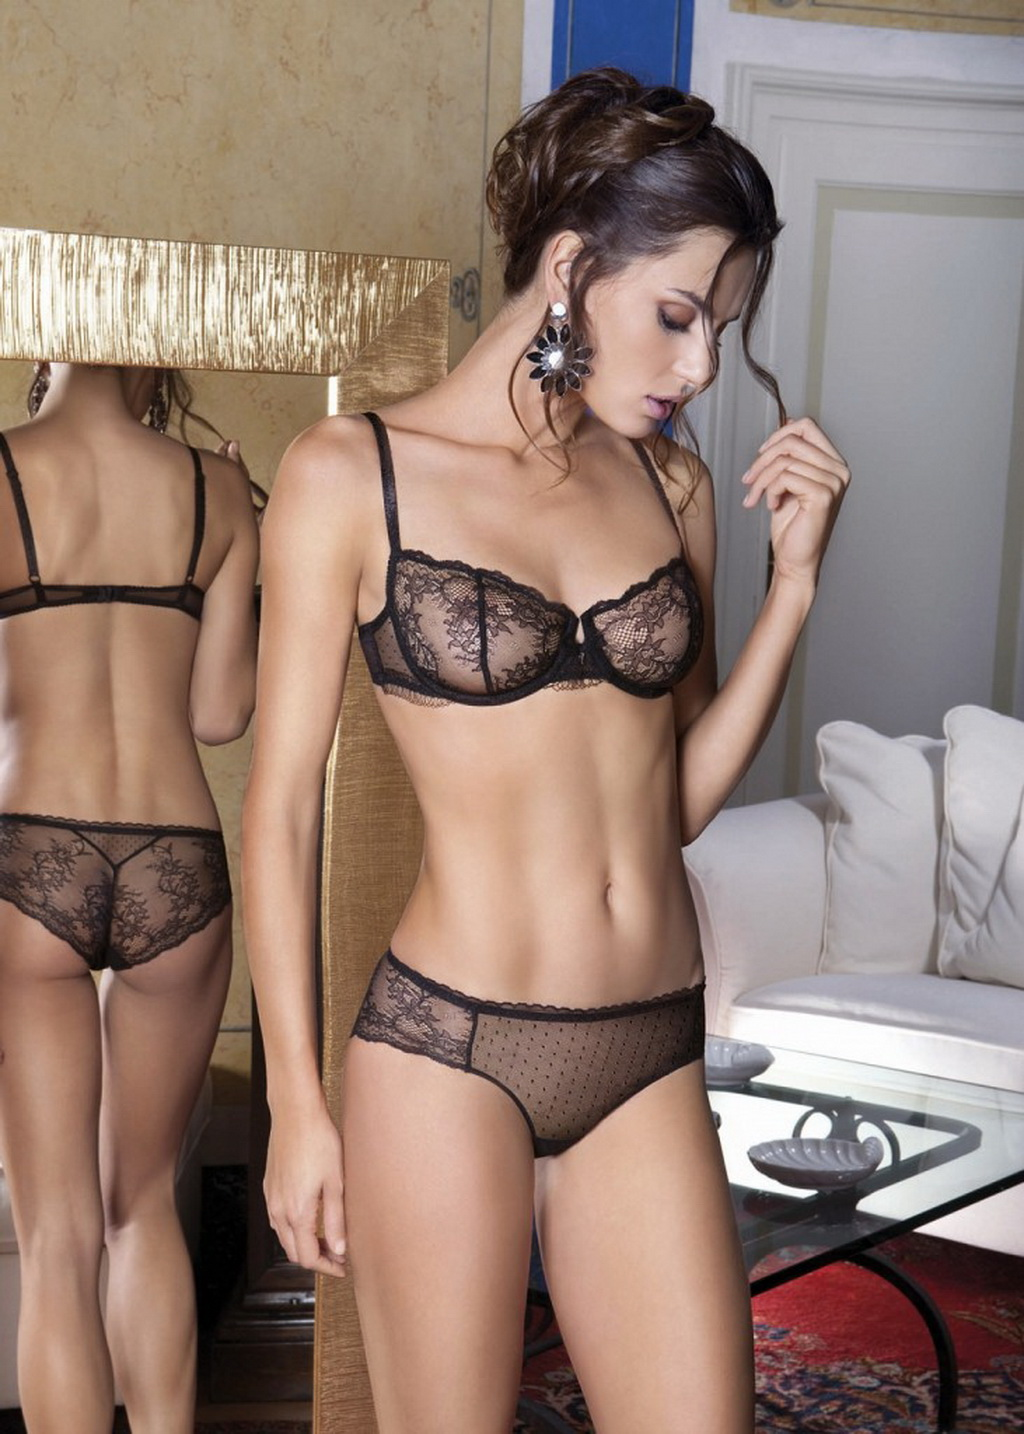 Idea magnificent Girl see through lingerie that interrupt